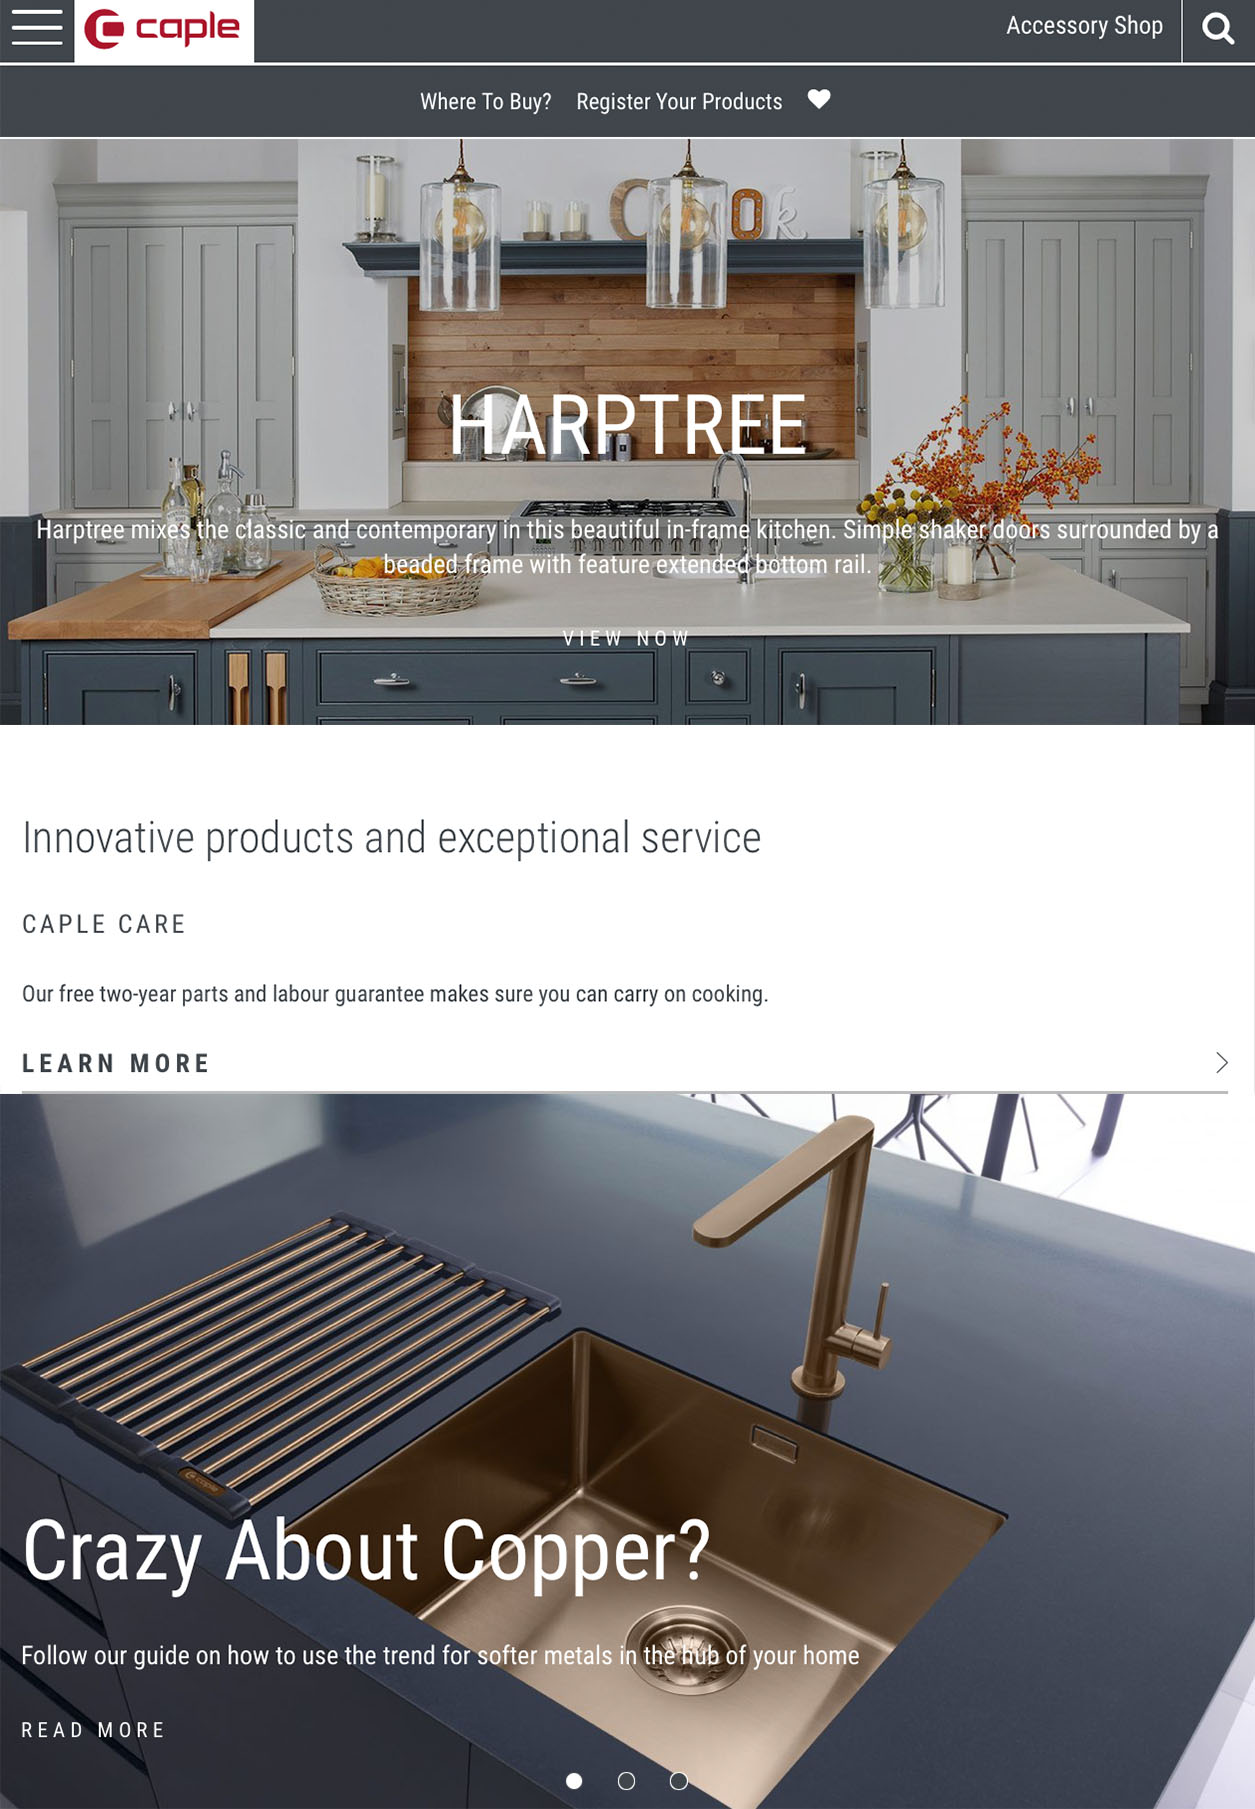 Style and functionality are key for Caple's new website